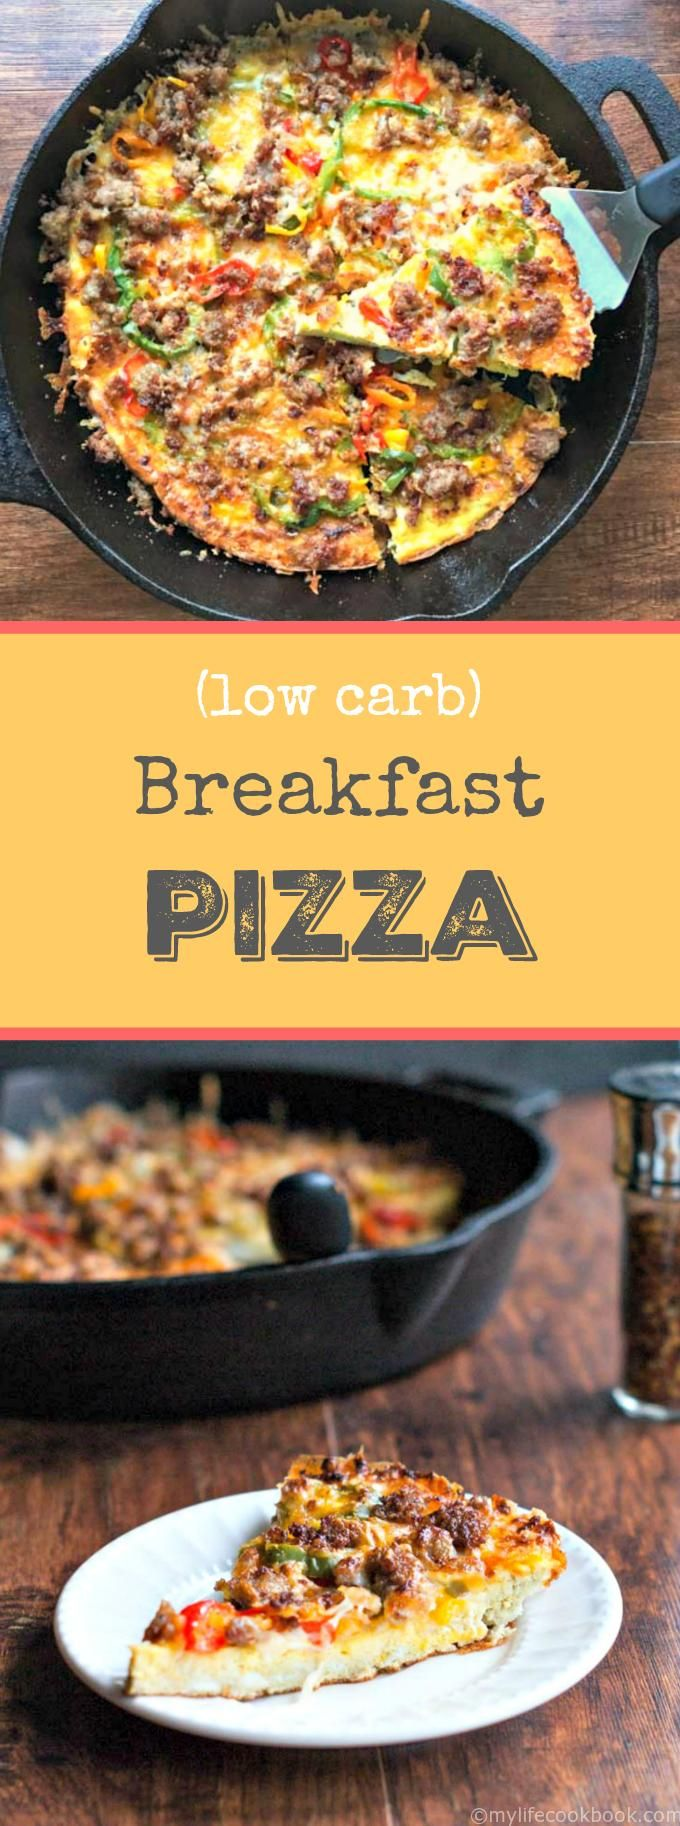 Low Carb Breakfast Pizza Recipe Low carb breakfast, No